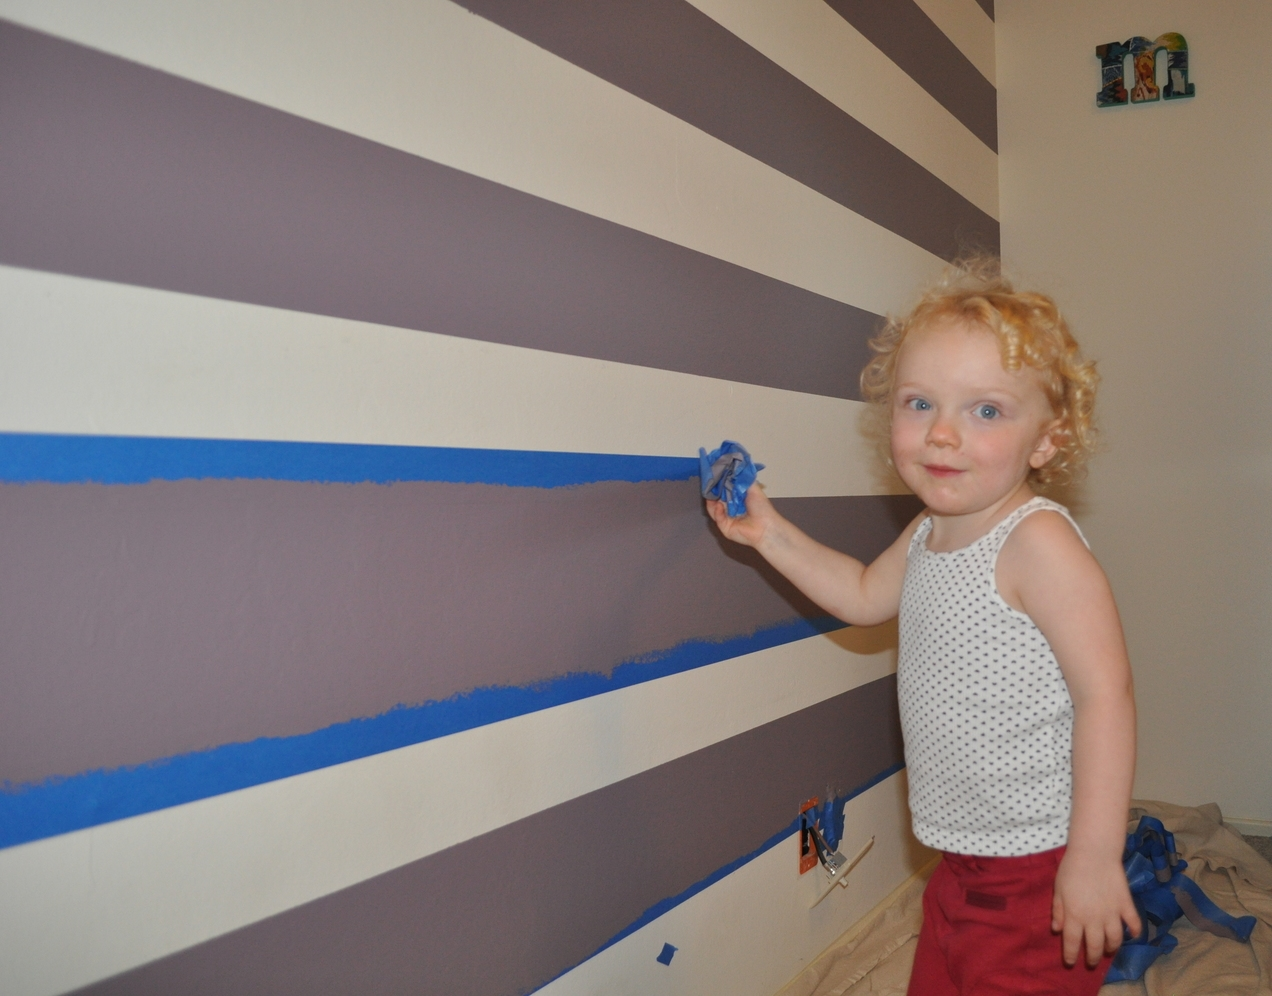 Removing the tape with help from Toddler G